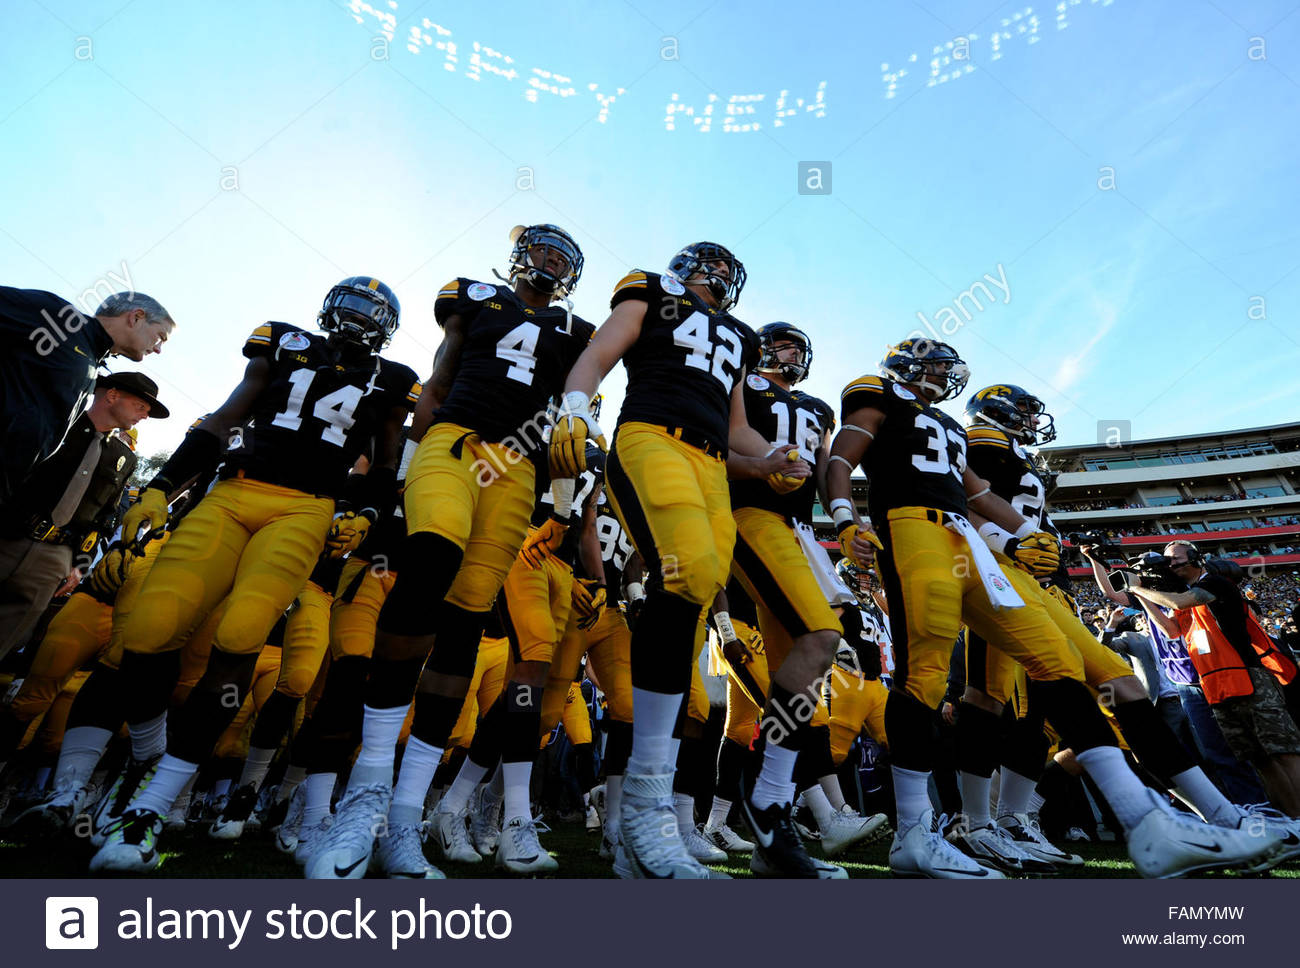 Pasadena, California, USA. 01st Jan, 2016. Iowa enters the field prior to the 102nd Rose Bowl game against Stanford - Stock Image